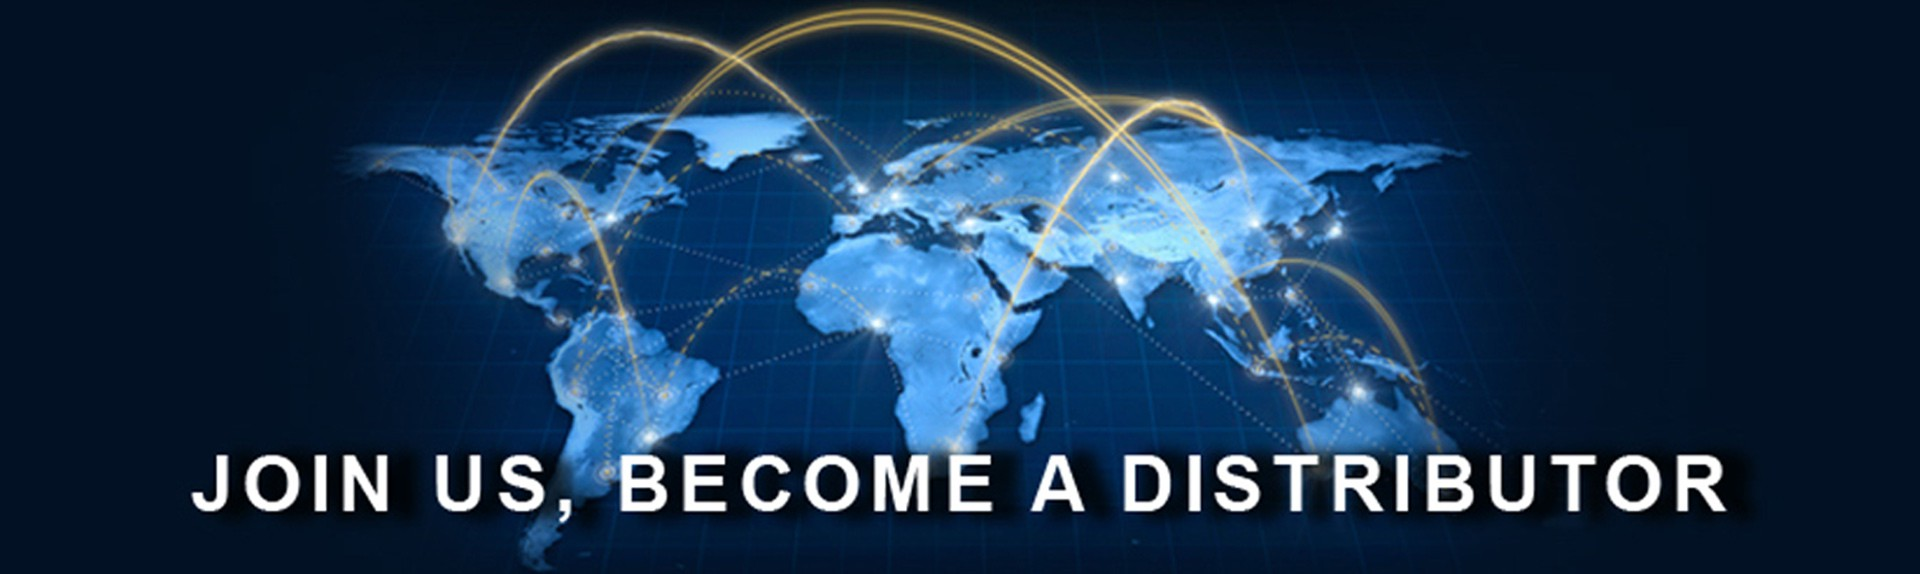 Join us, Become a Distributor